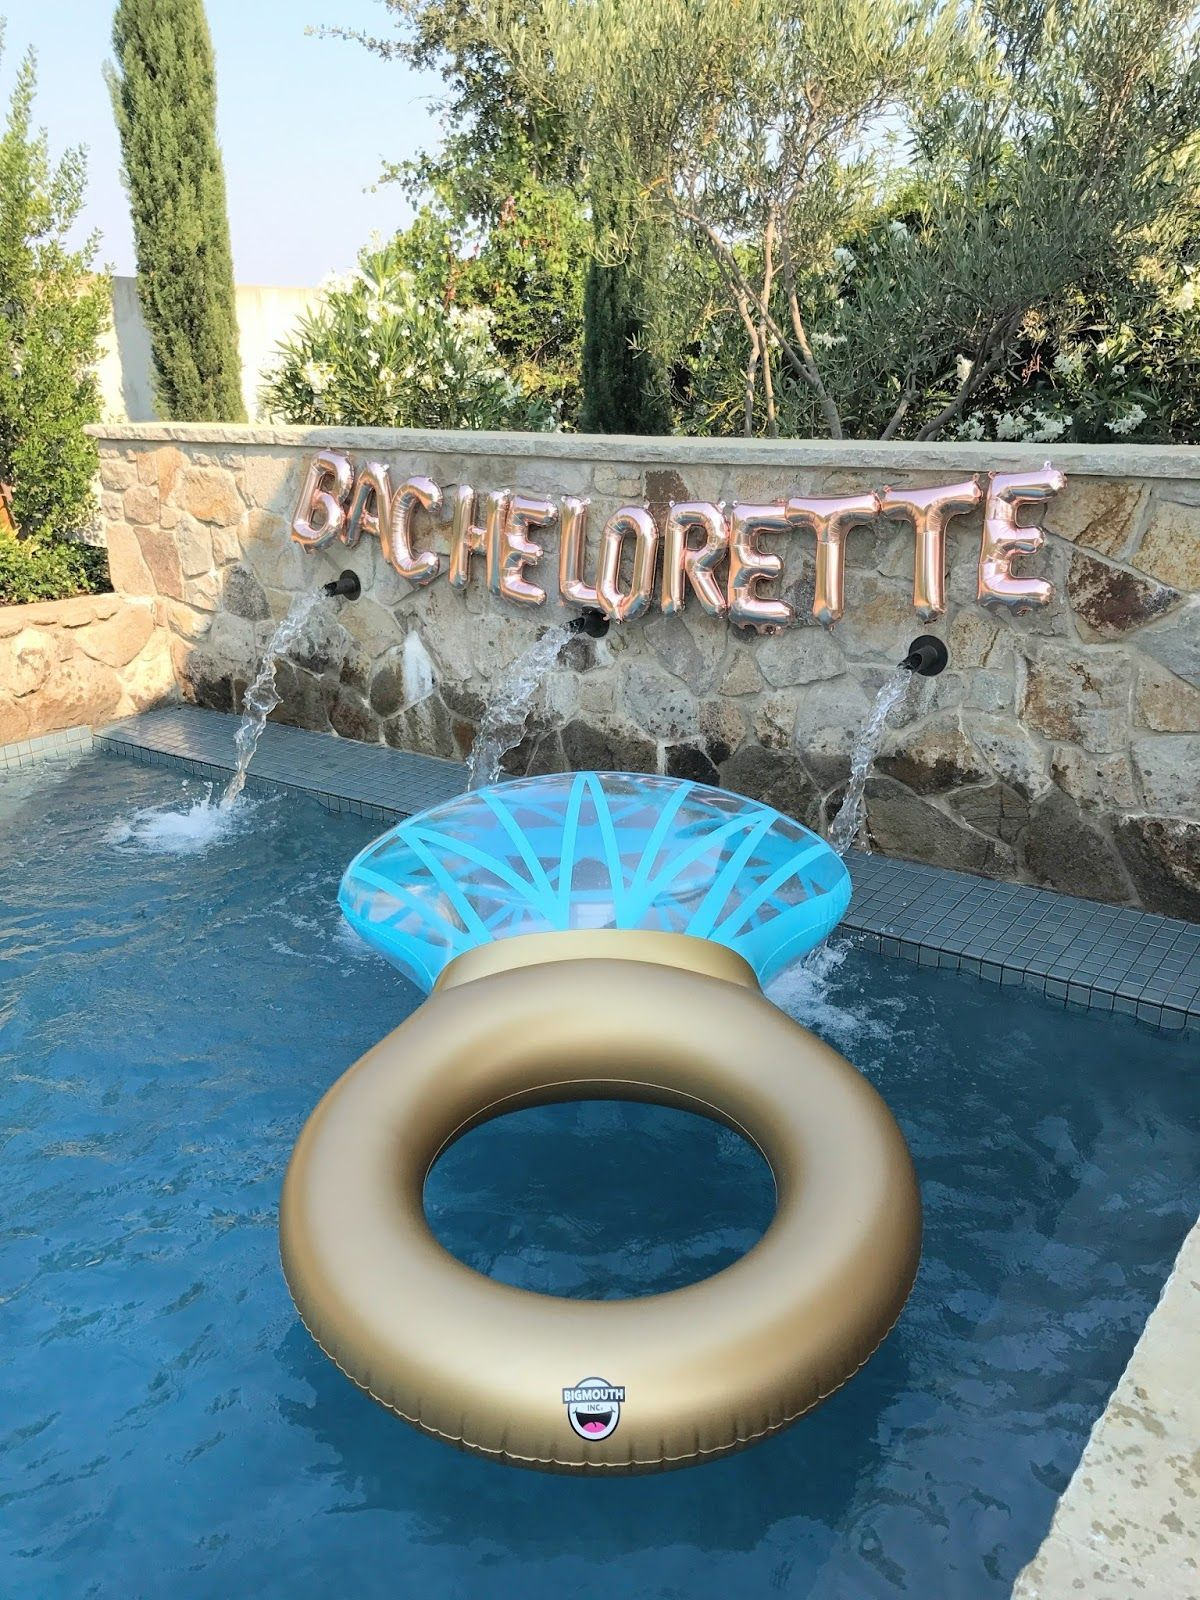 Napa Bachelorette Party Cute Ideas Balloon Sign Ring Pool Float Ringly: Wedding Ring Pool Toy At Reisefeber.org